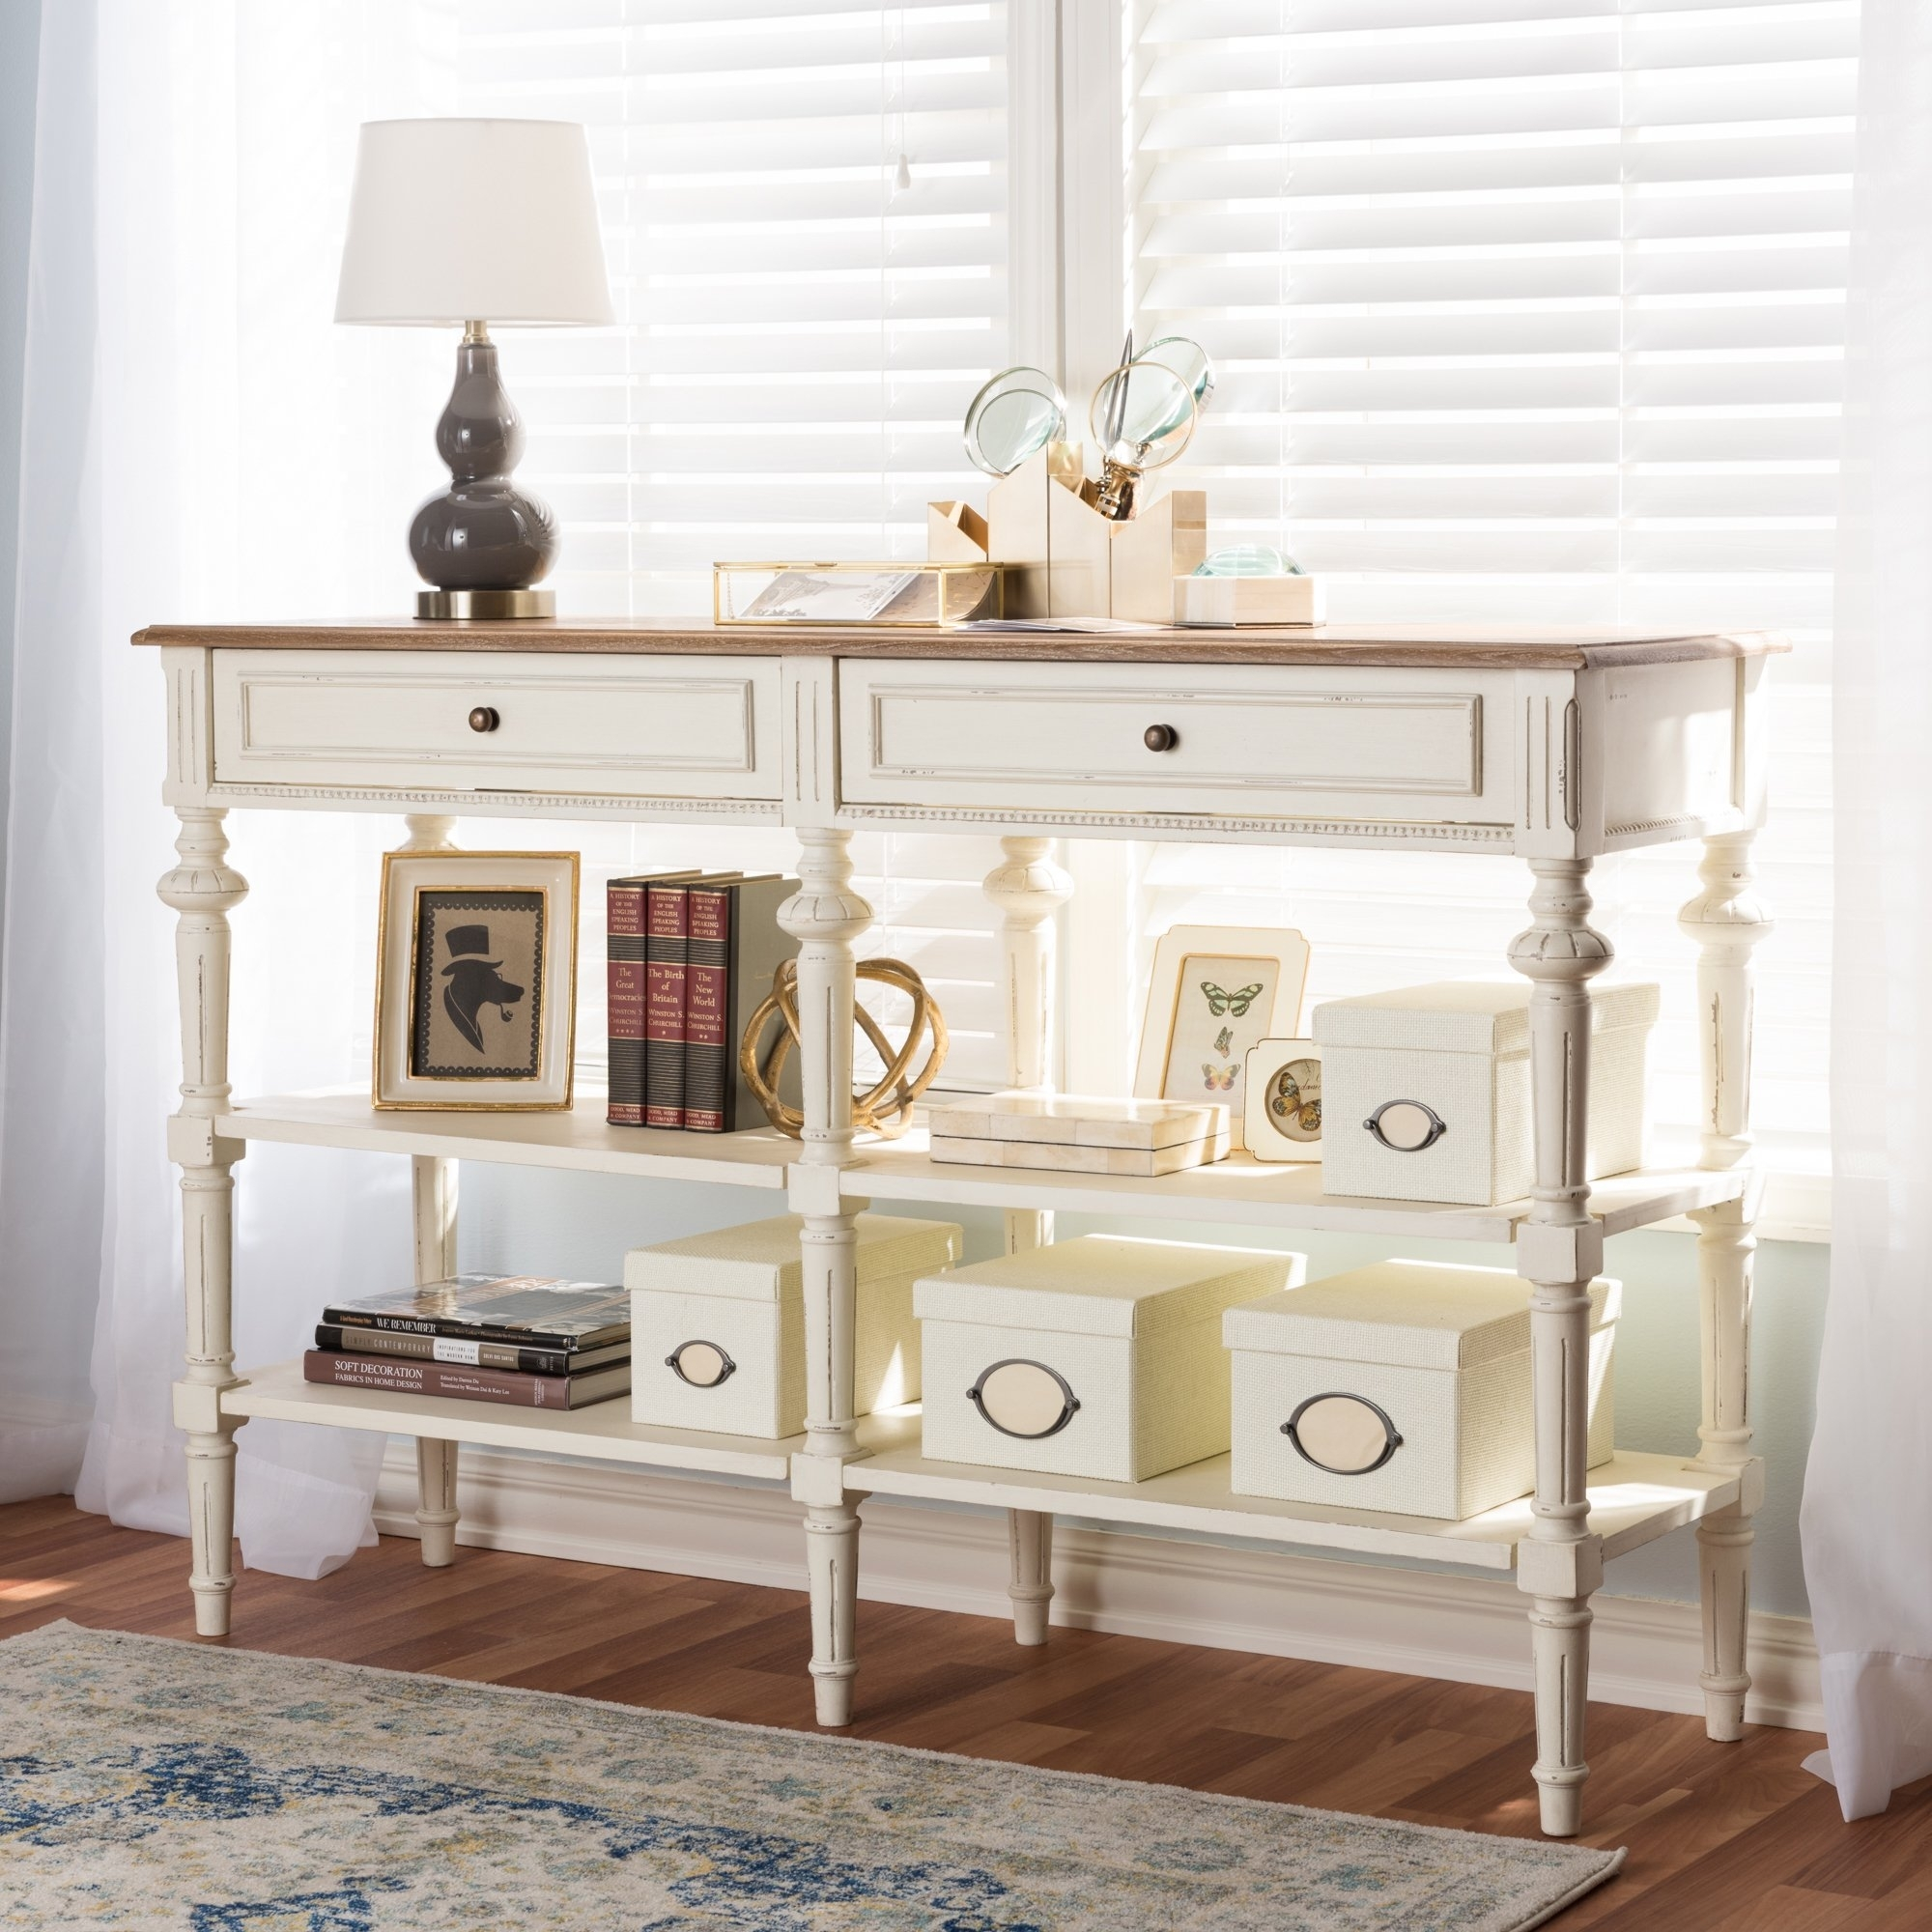 Buy Natural Finish, Entryway Table Online At Overstock | Our in Mandara 3-Drawer 2-Door Sideboards (Image 4 of 30)